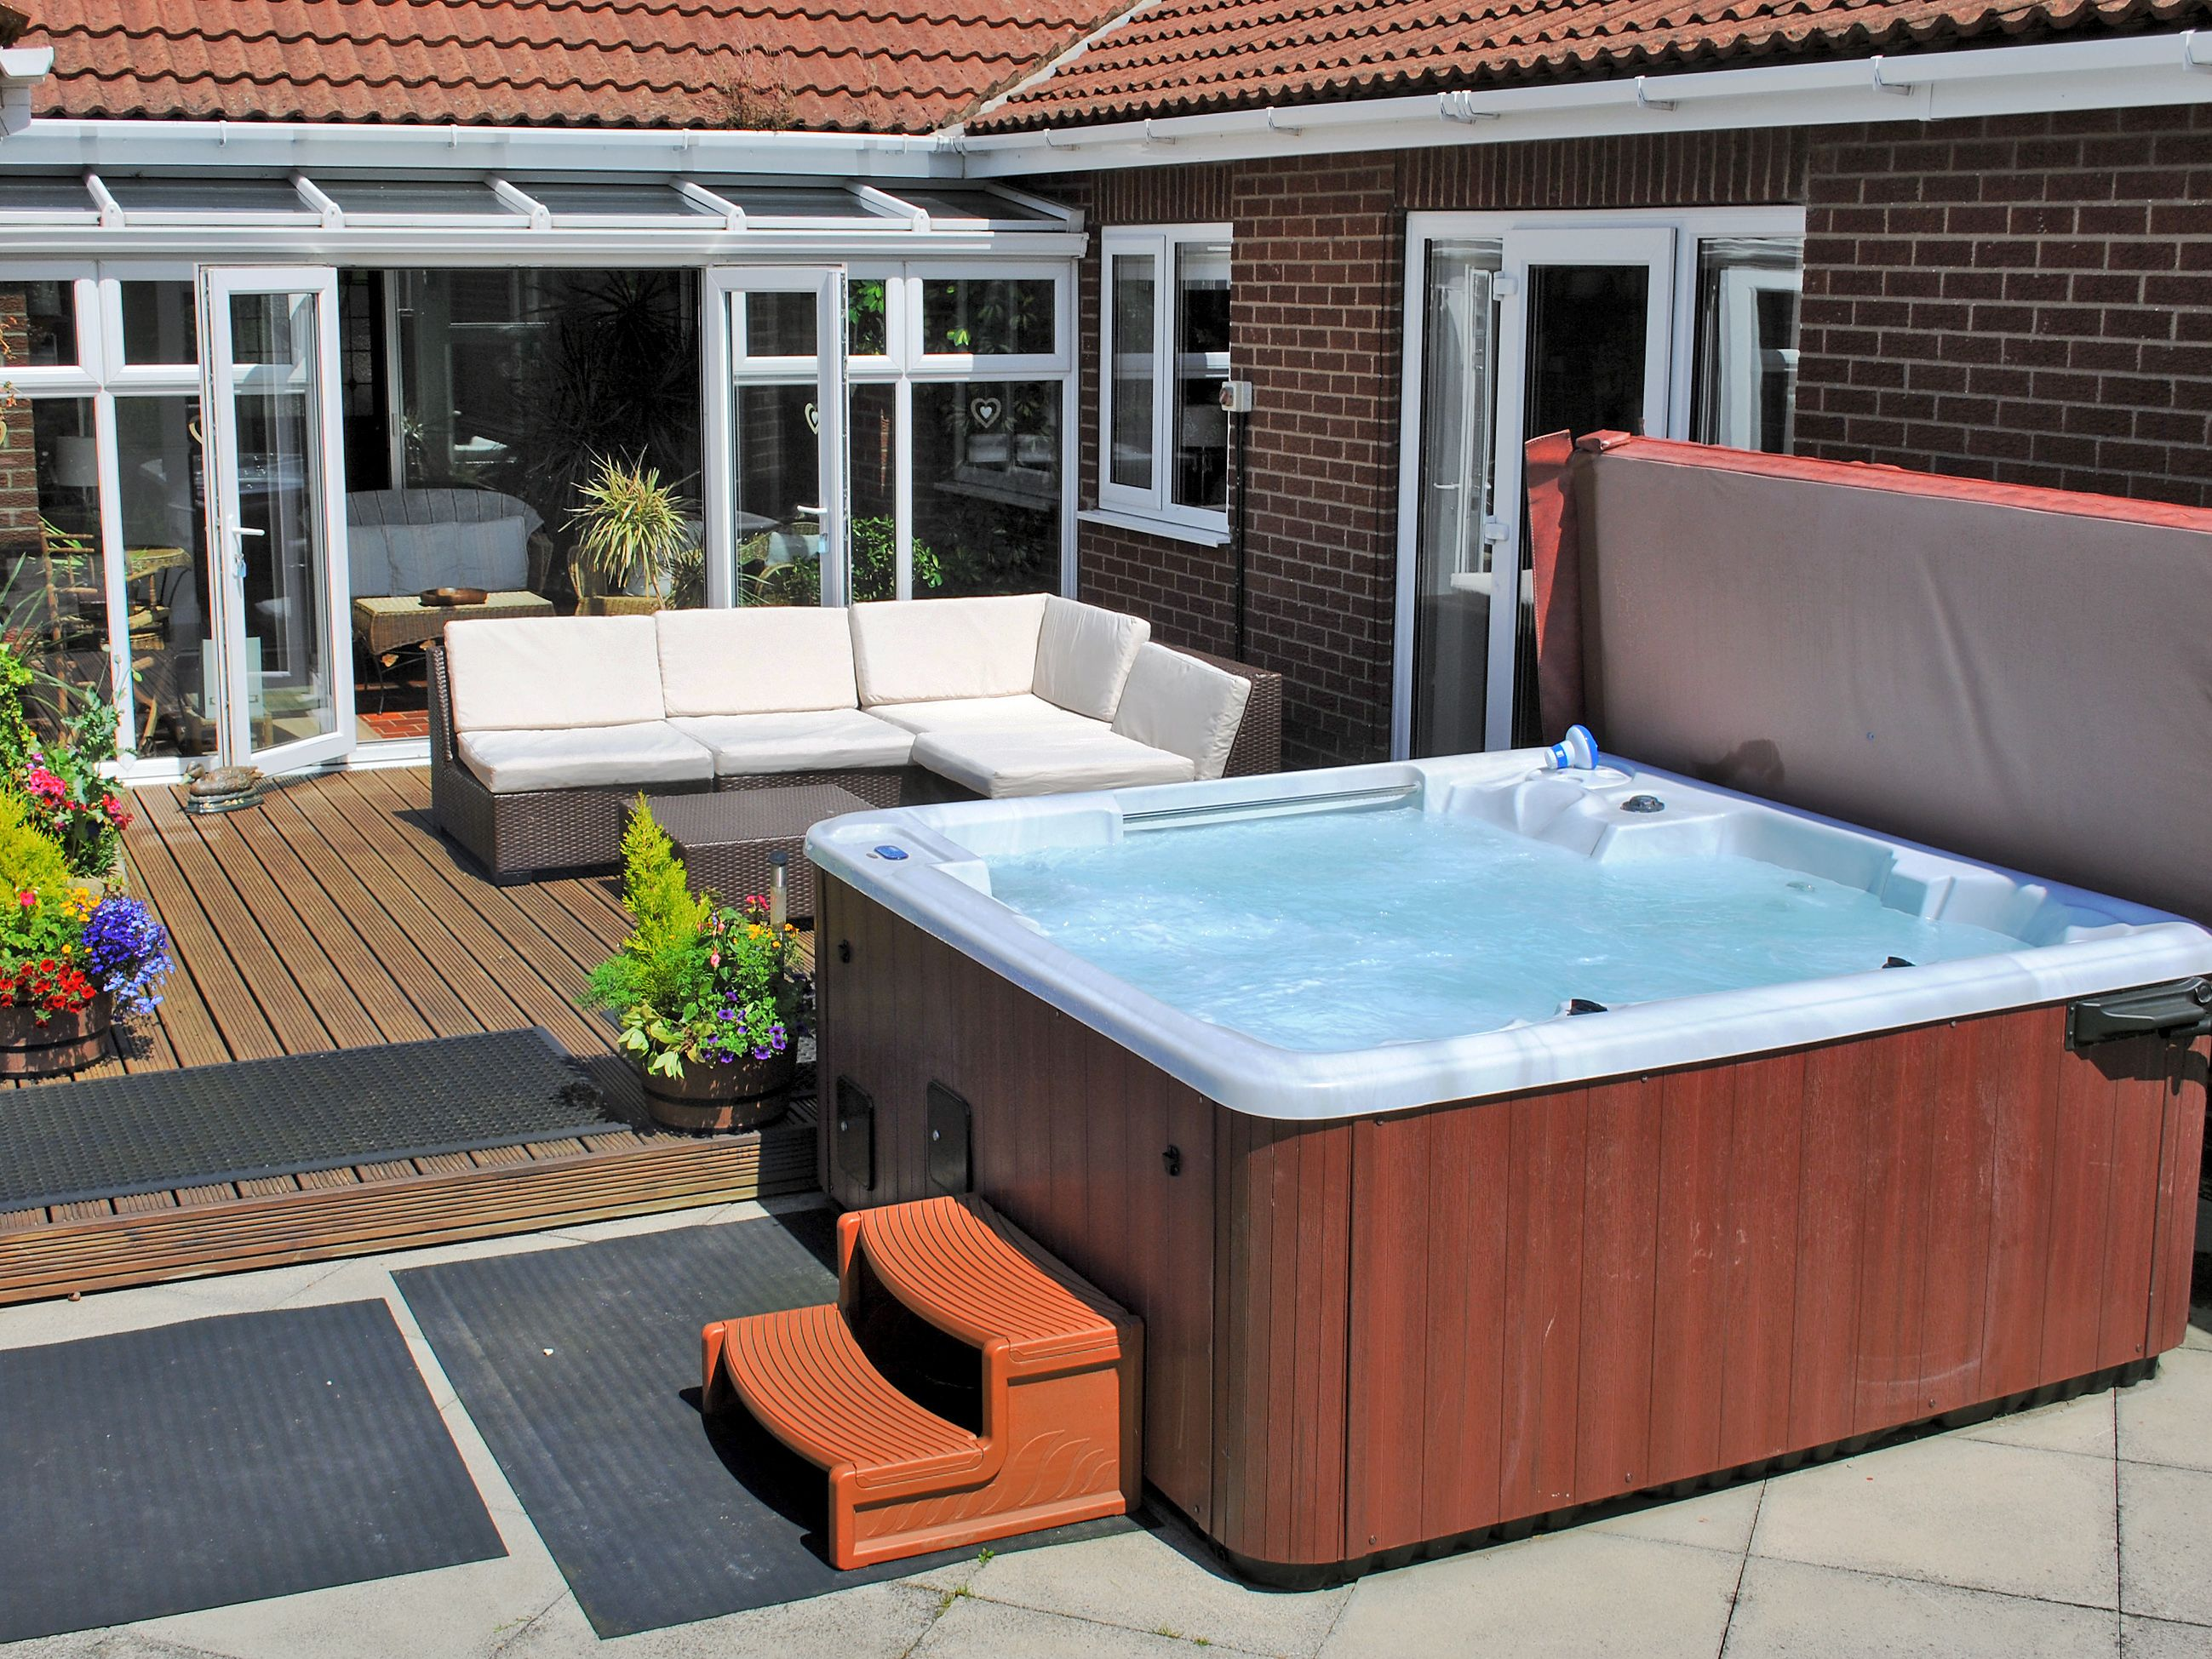 Carr House Ref Ijz In Cayton Scarborough Yorkshire Cottages Com Hot Tub Holidays Spa Hot Tubs Hot Tub